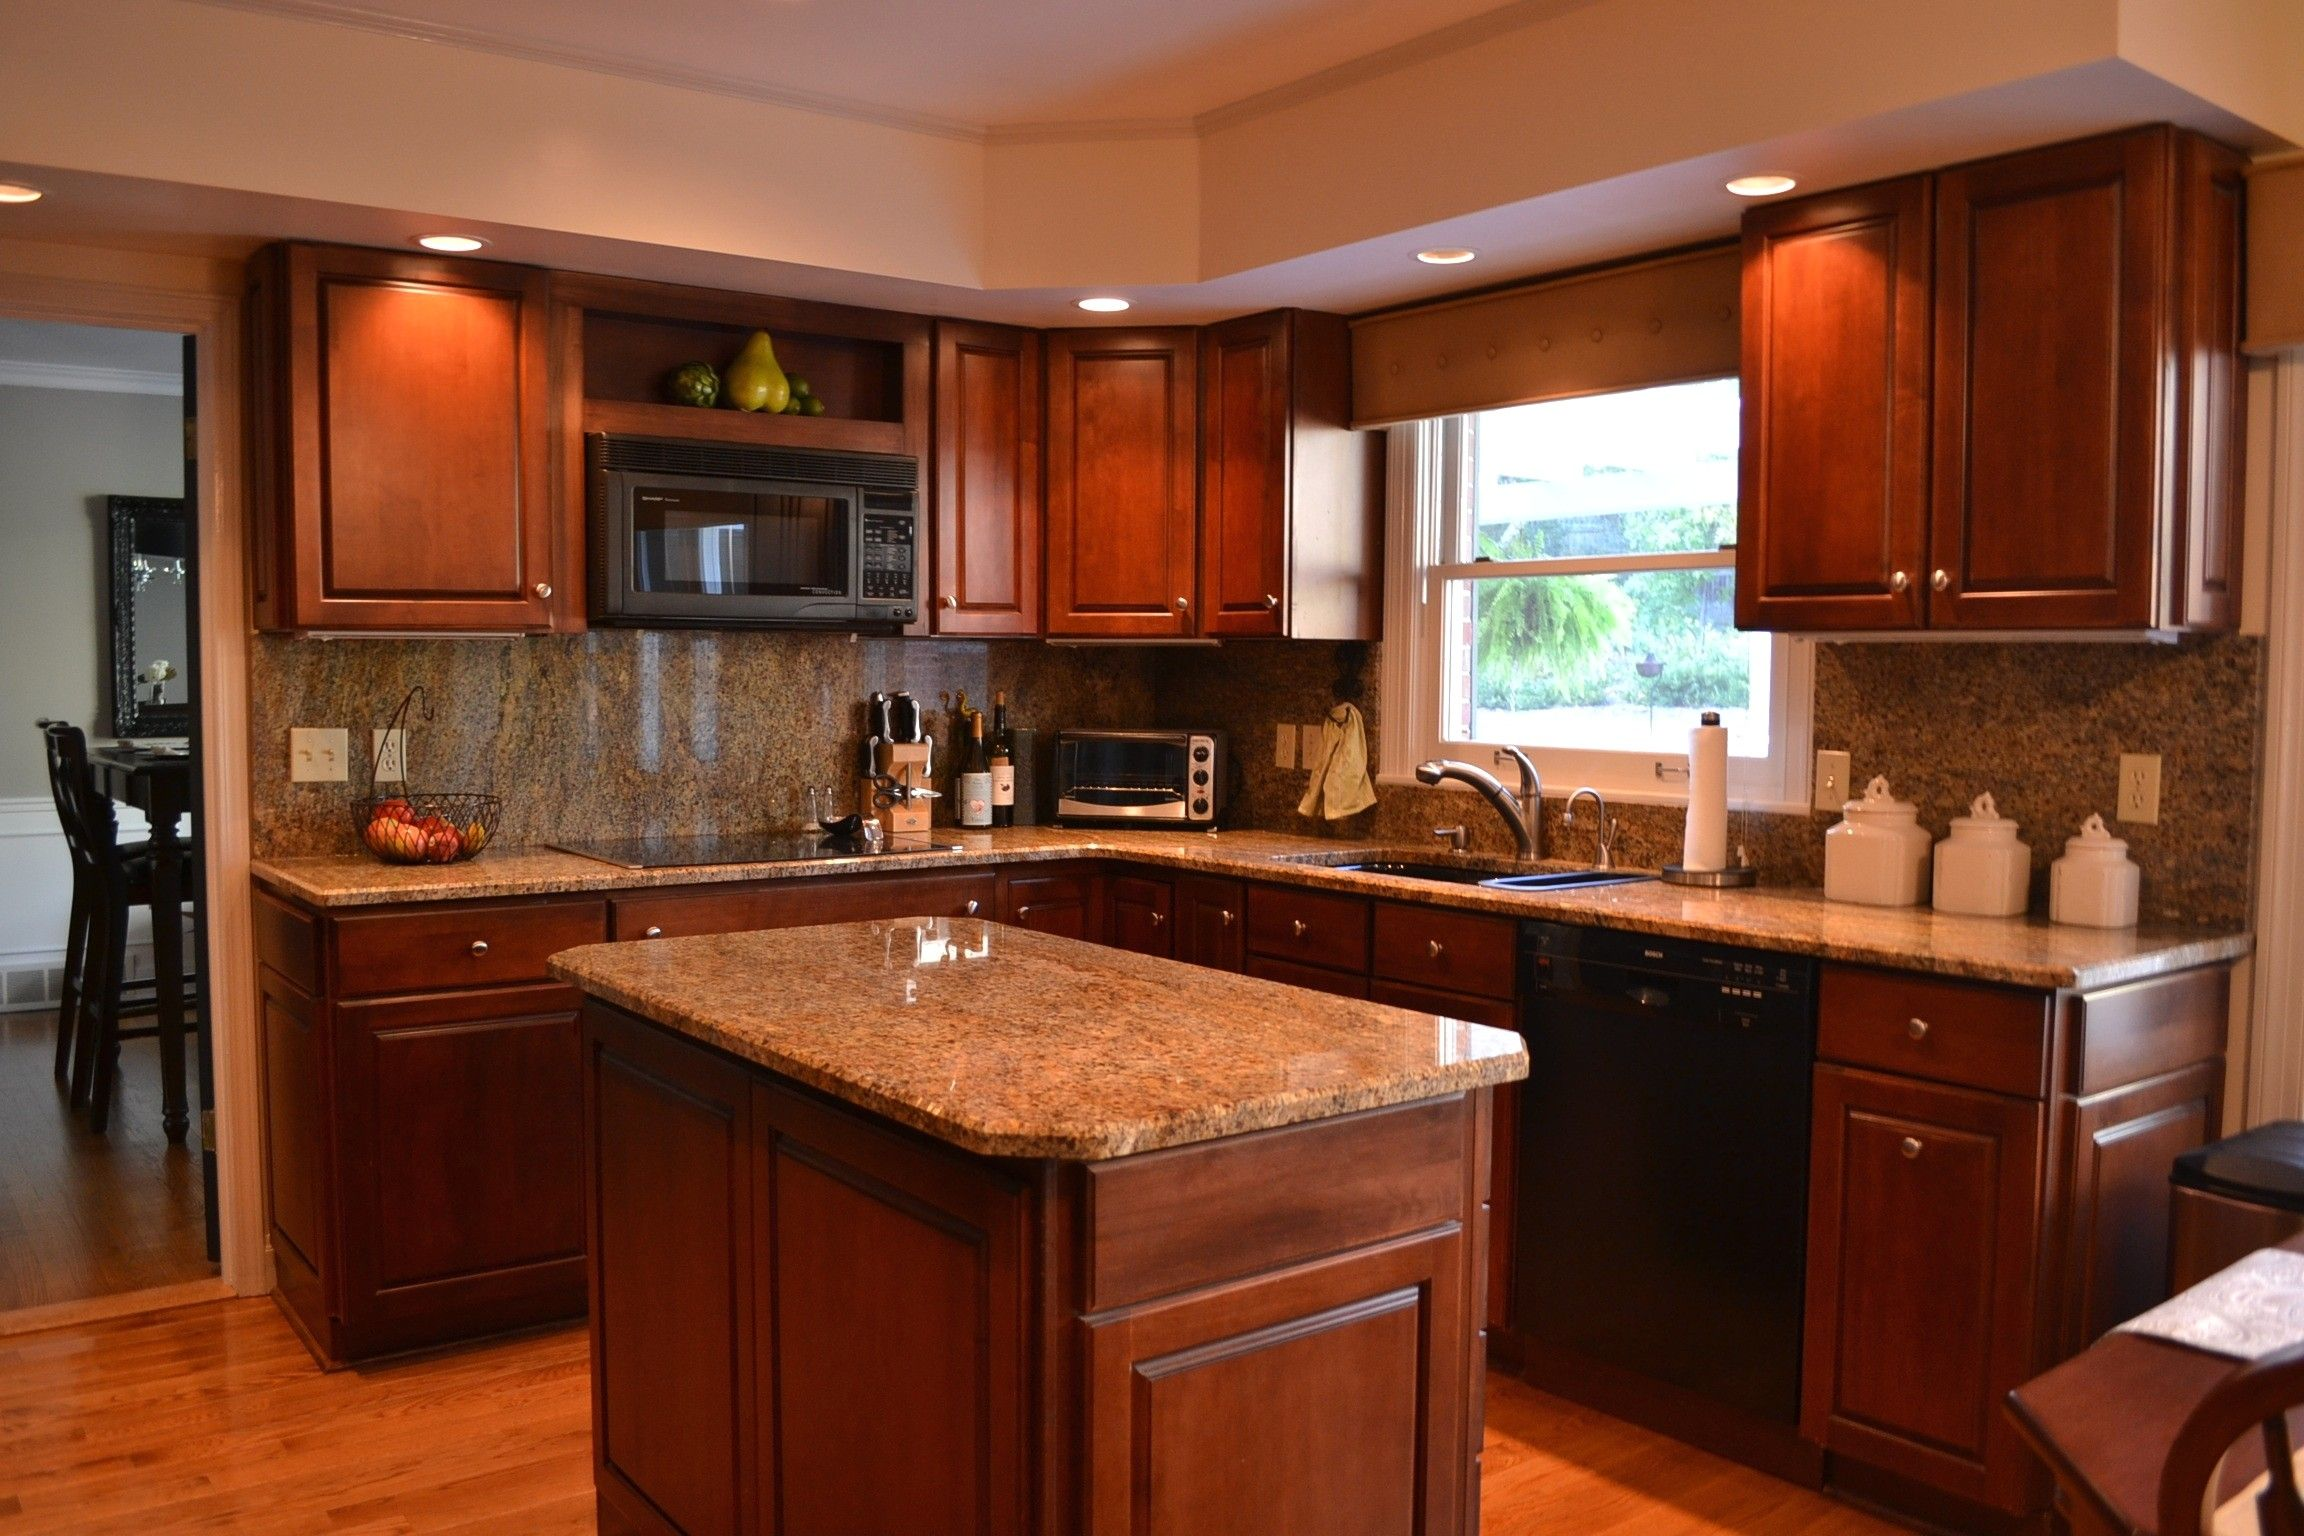 cabinet countertop color combinations google search home decor kitchen pinterest on kitchen cabinets color combination id=87674